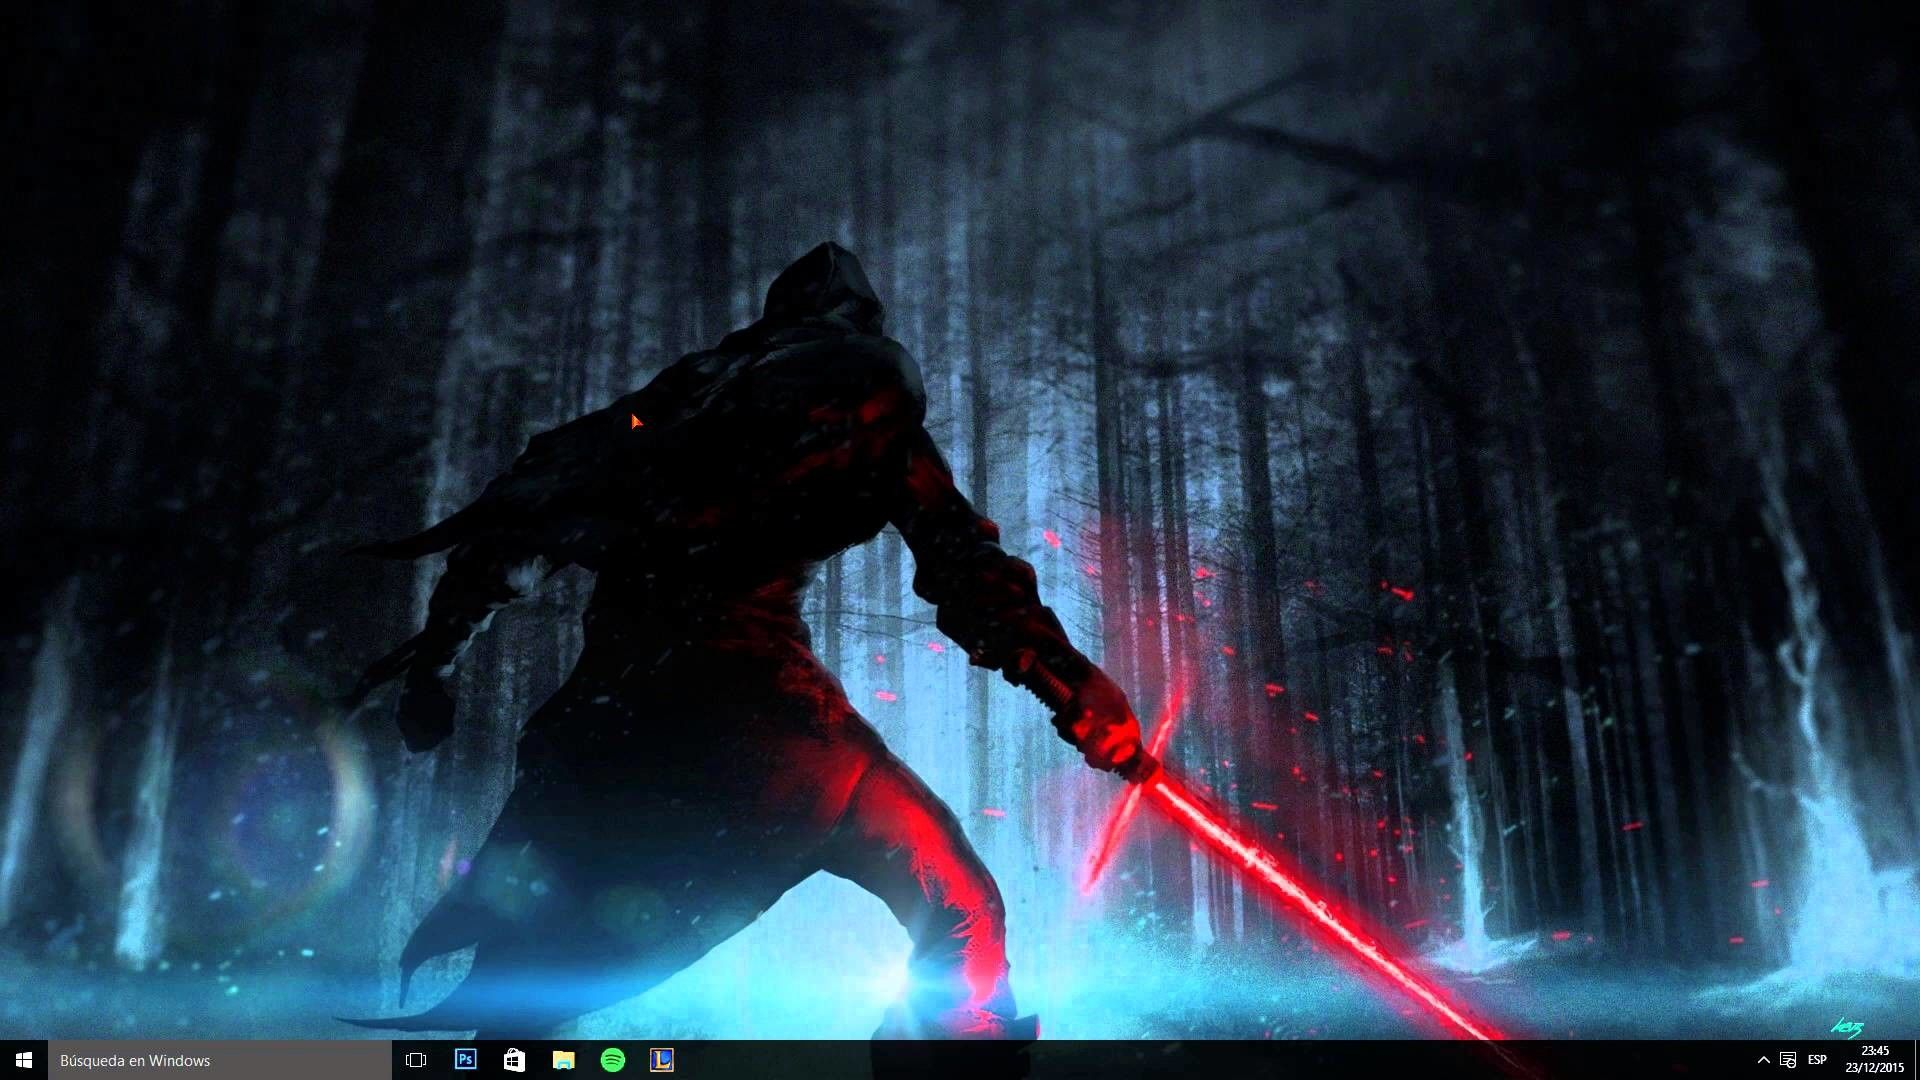 Animated Wallpaper Windows 10 56 Images Star Wars Wallpaper Wallpaper Pc Animated Wallpaper For Pc